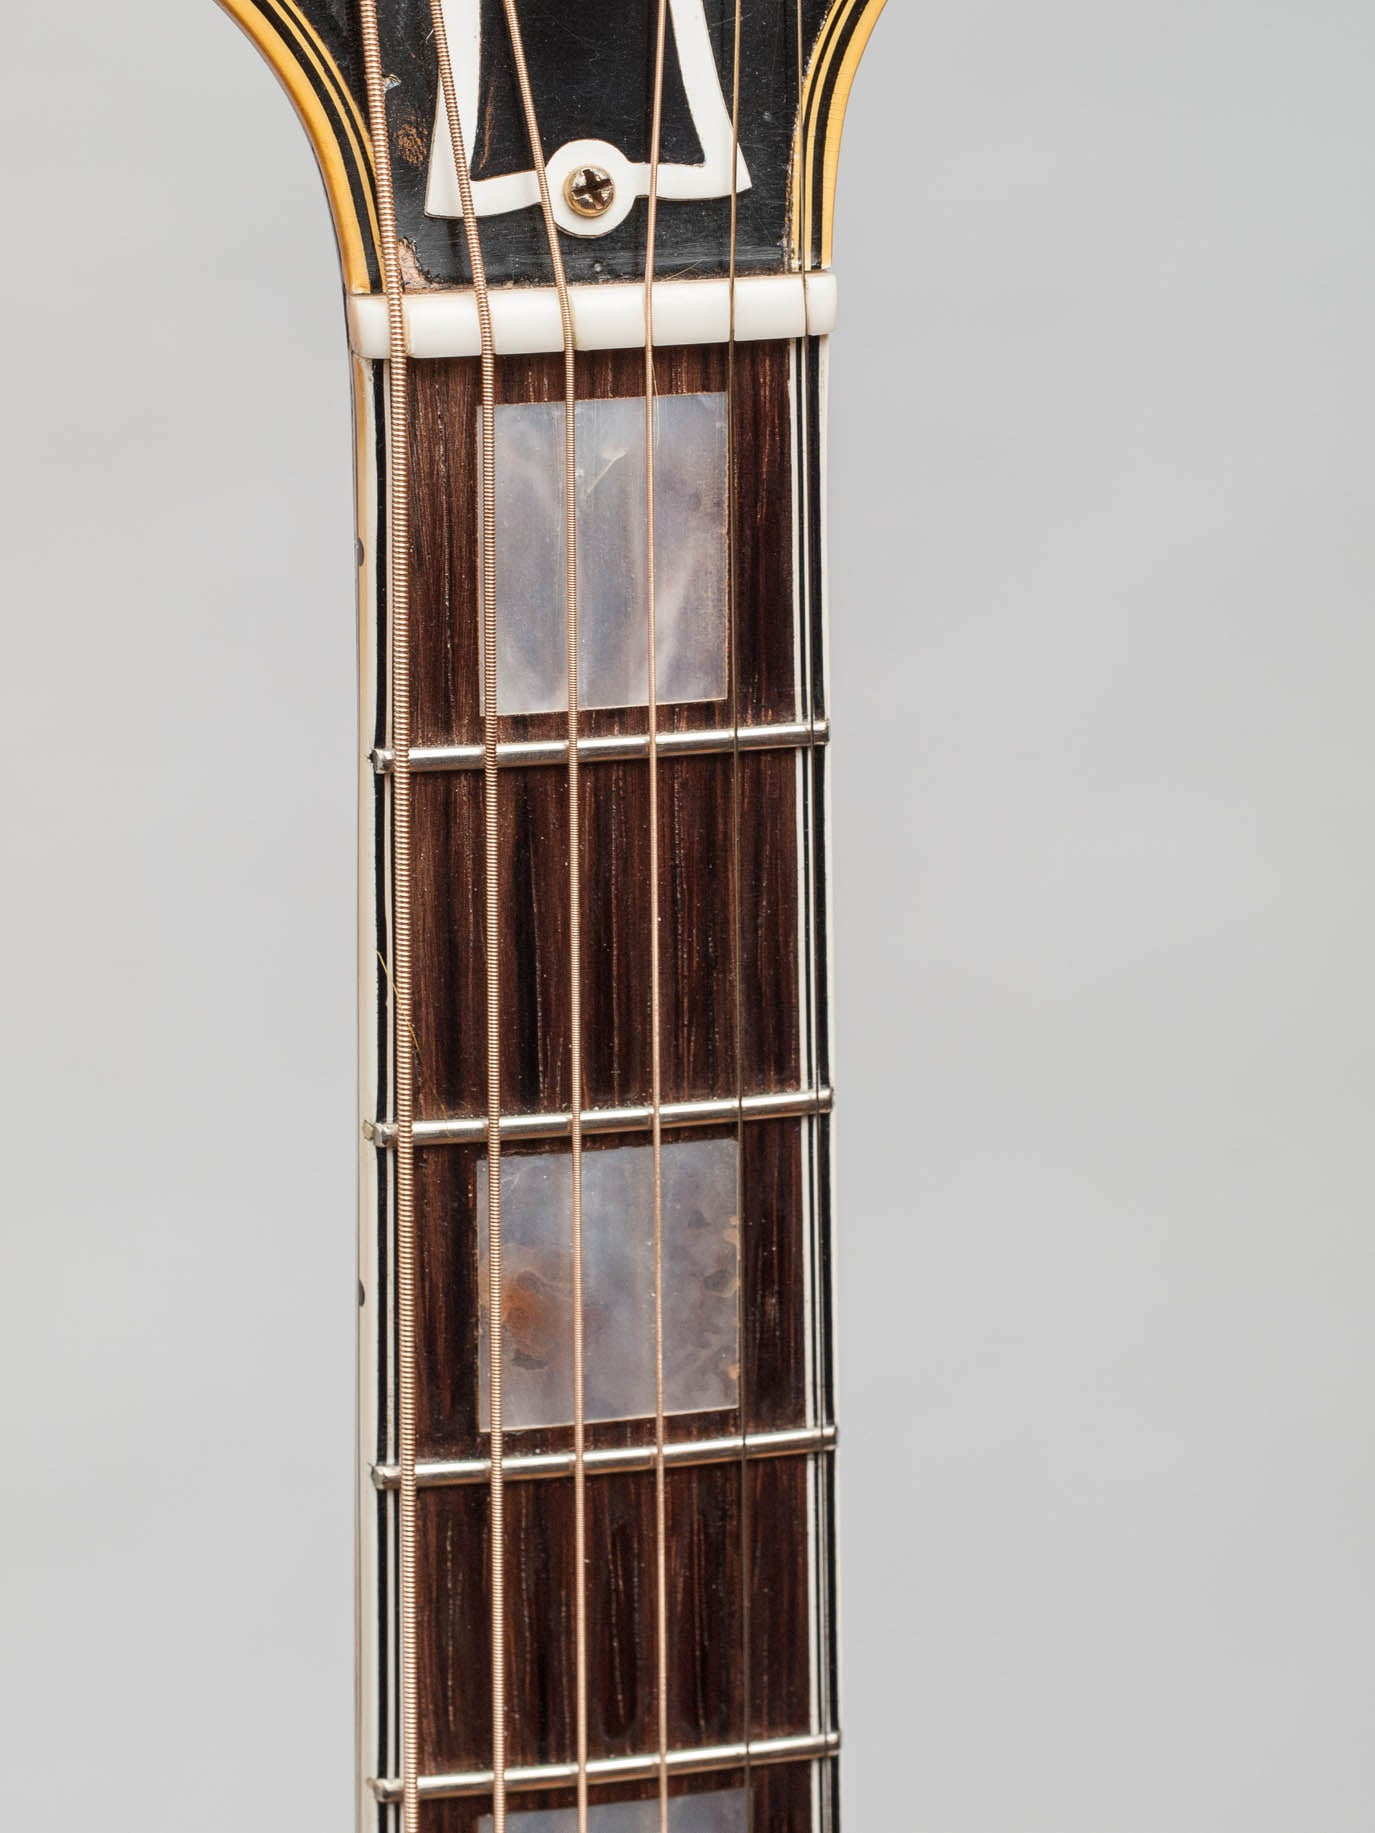 1947 Gibson L-5